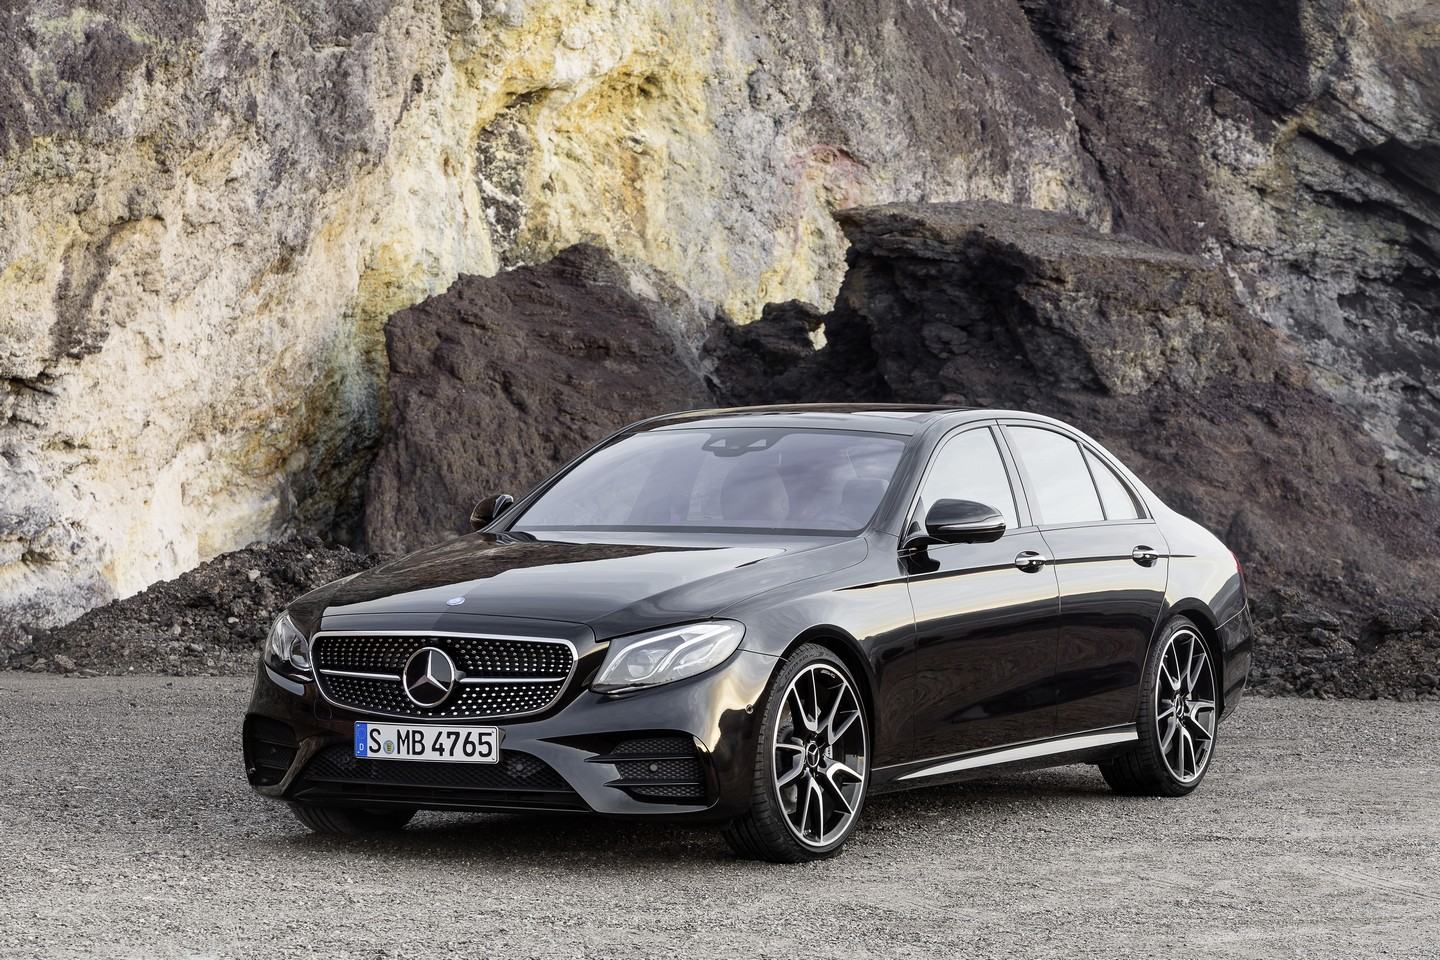 Mercedes-AMG E43 4Matic Revealed, It Has 401 HP and Nine-Speed